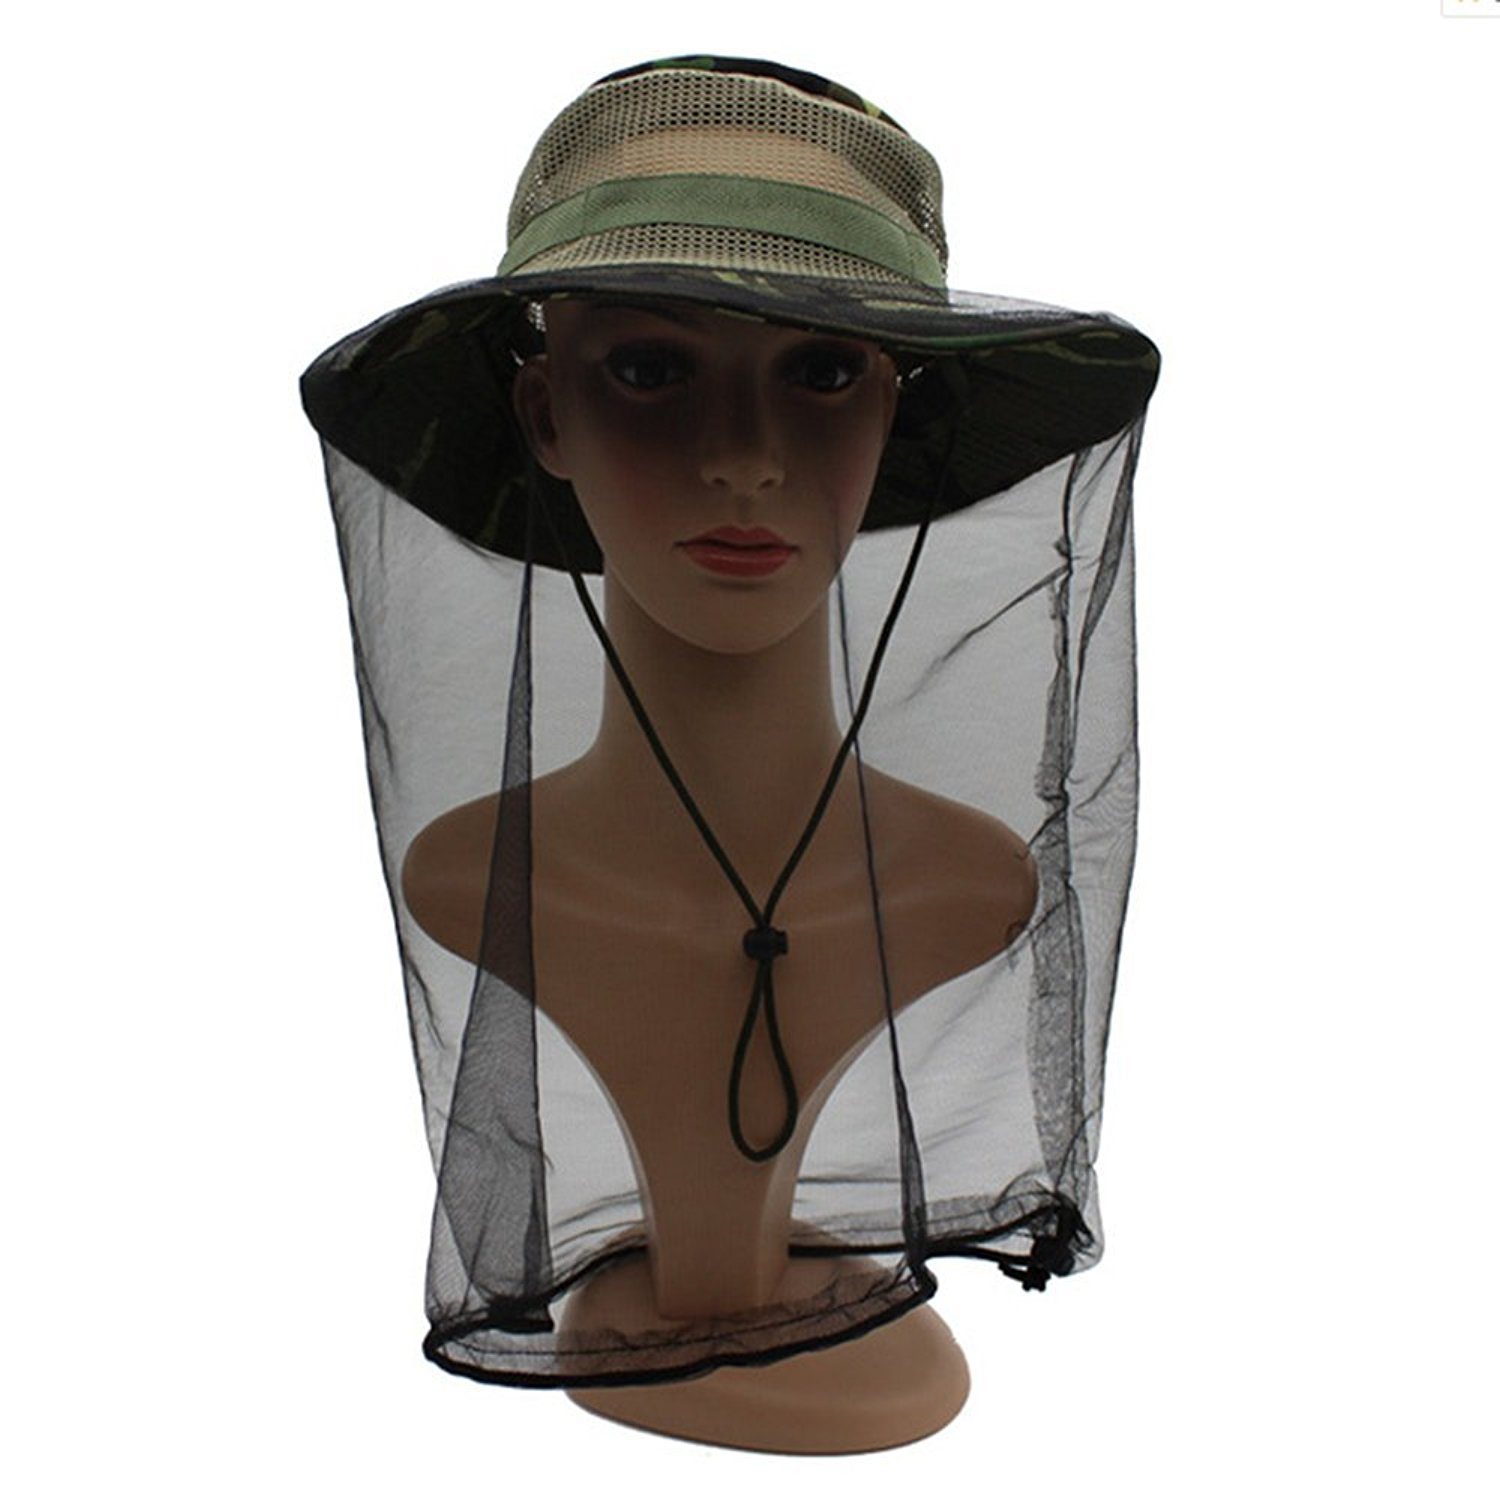 2db4a79137b Get Quotations · ZTMY Outdoor Anti-Mosquito Mask Hat with Head Net Mesh  Face UV Protection Sun Hat